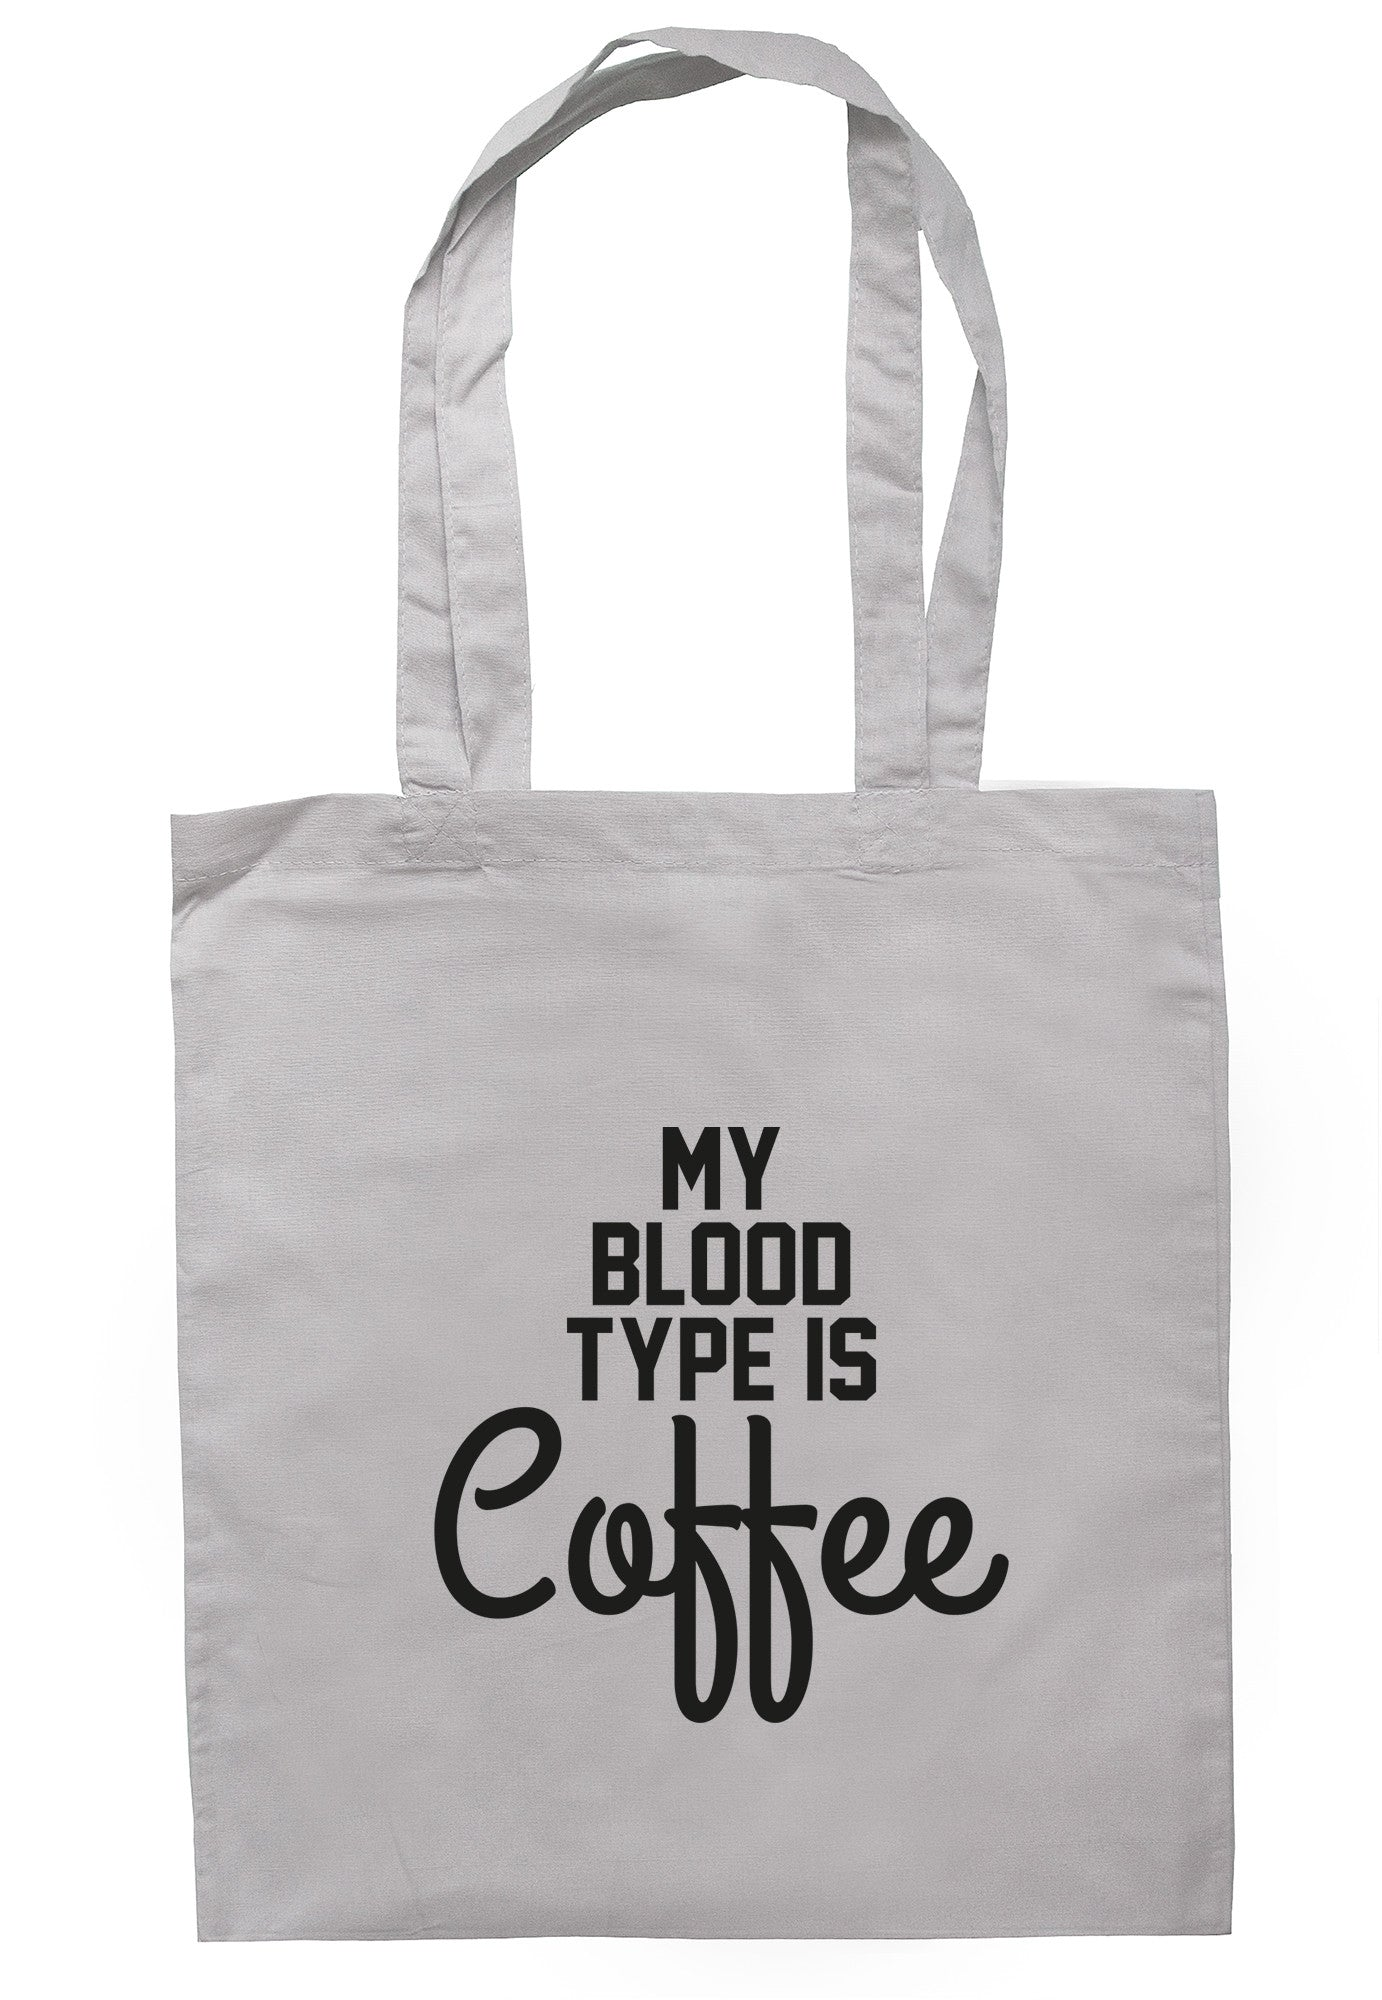 My Blood Type Is Coffee Tote Bag TB0483 - Illustrated Identity Ltd.